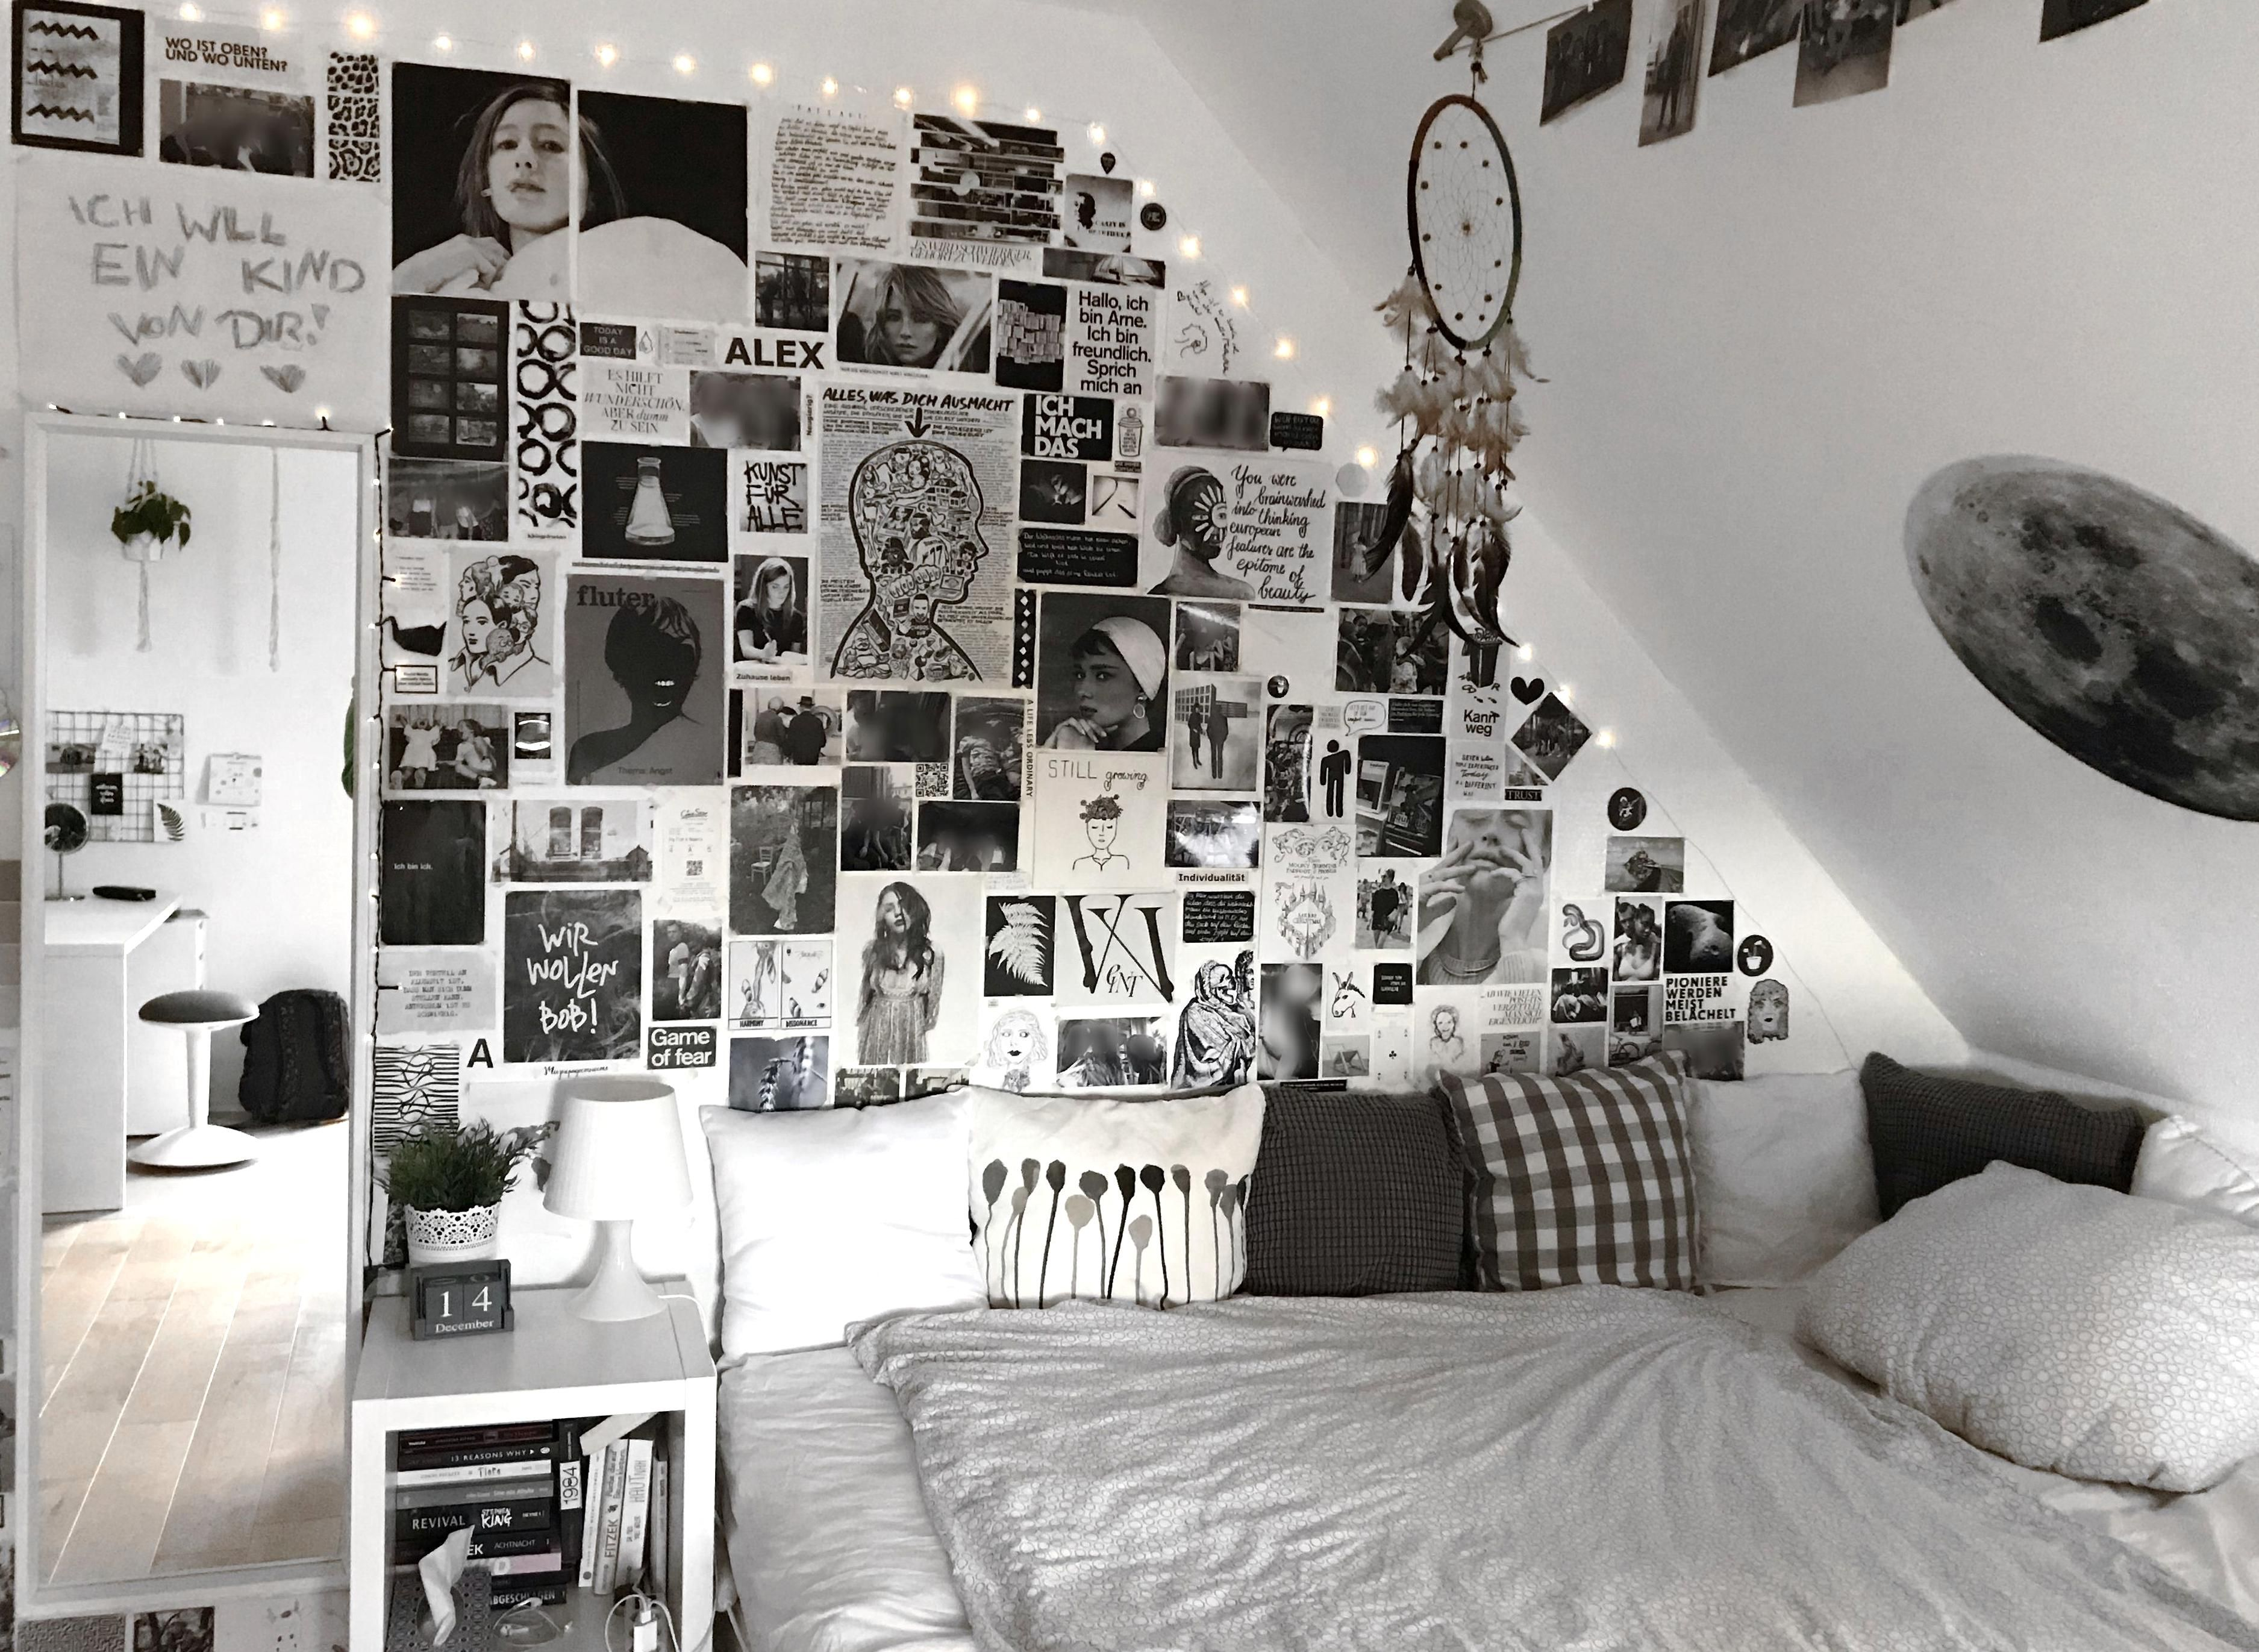 Pin By Yasmin Kamora On My Collections In 2020 Black Room Decor Bedroom Ideas For Small Rooms Cozy Black White Rooms